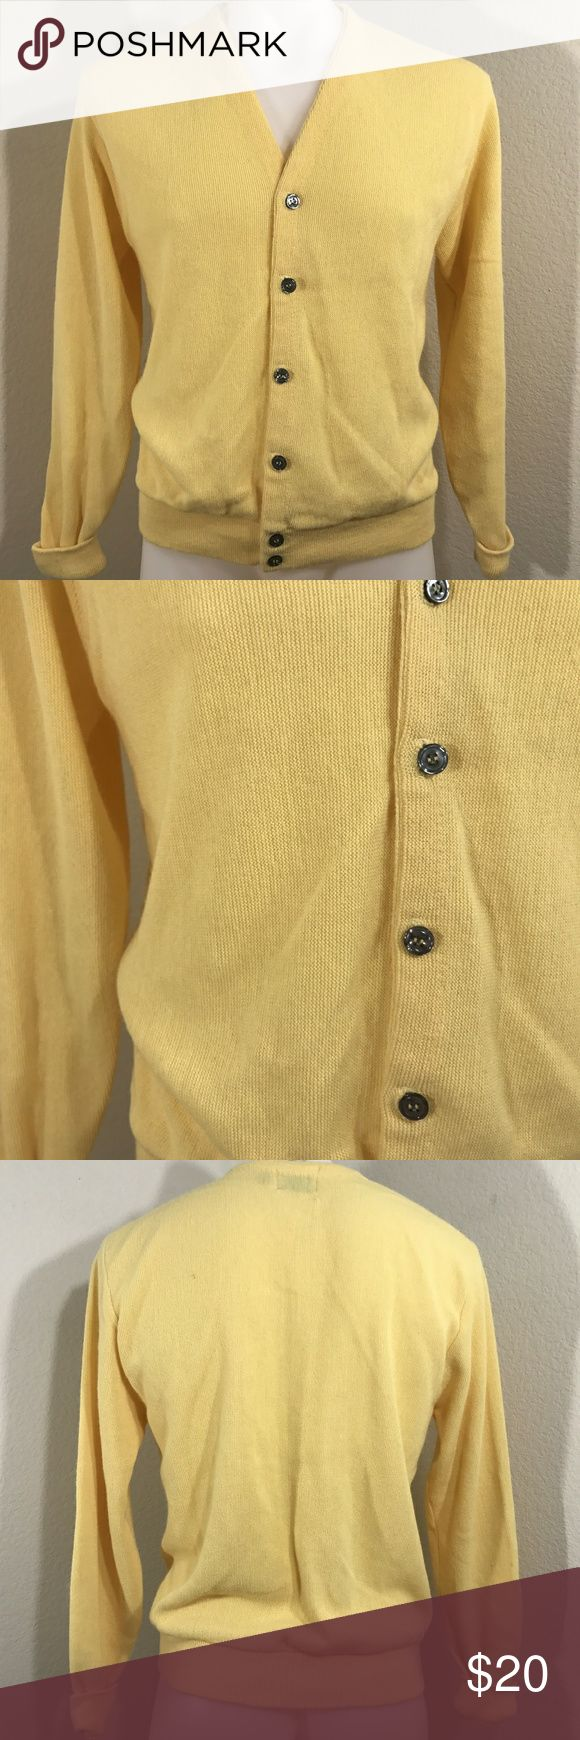 """VTG 1970s Mod Hip Sears Men's Store Yellow Sweater VTG 1970s Mod Hip Sears Men's Store Yellow Button V-Neck Sweater Cardigan Large   There are a few spots on the sweater that I have not tried any spot removal on.  Please see photos as we do consider them to be a part of the description.   Approximate measurements laying flat  Collar to shoulder 6""""  Shoulder to end of sleeve 27""""  Across chest pit to pit 25""""  Length shoulder to hem 28"""" Sears Sweaters Cardigan"""